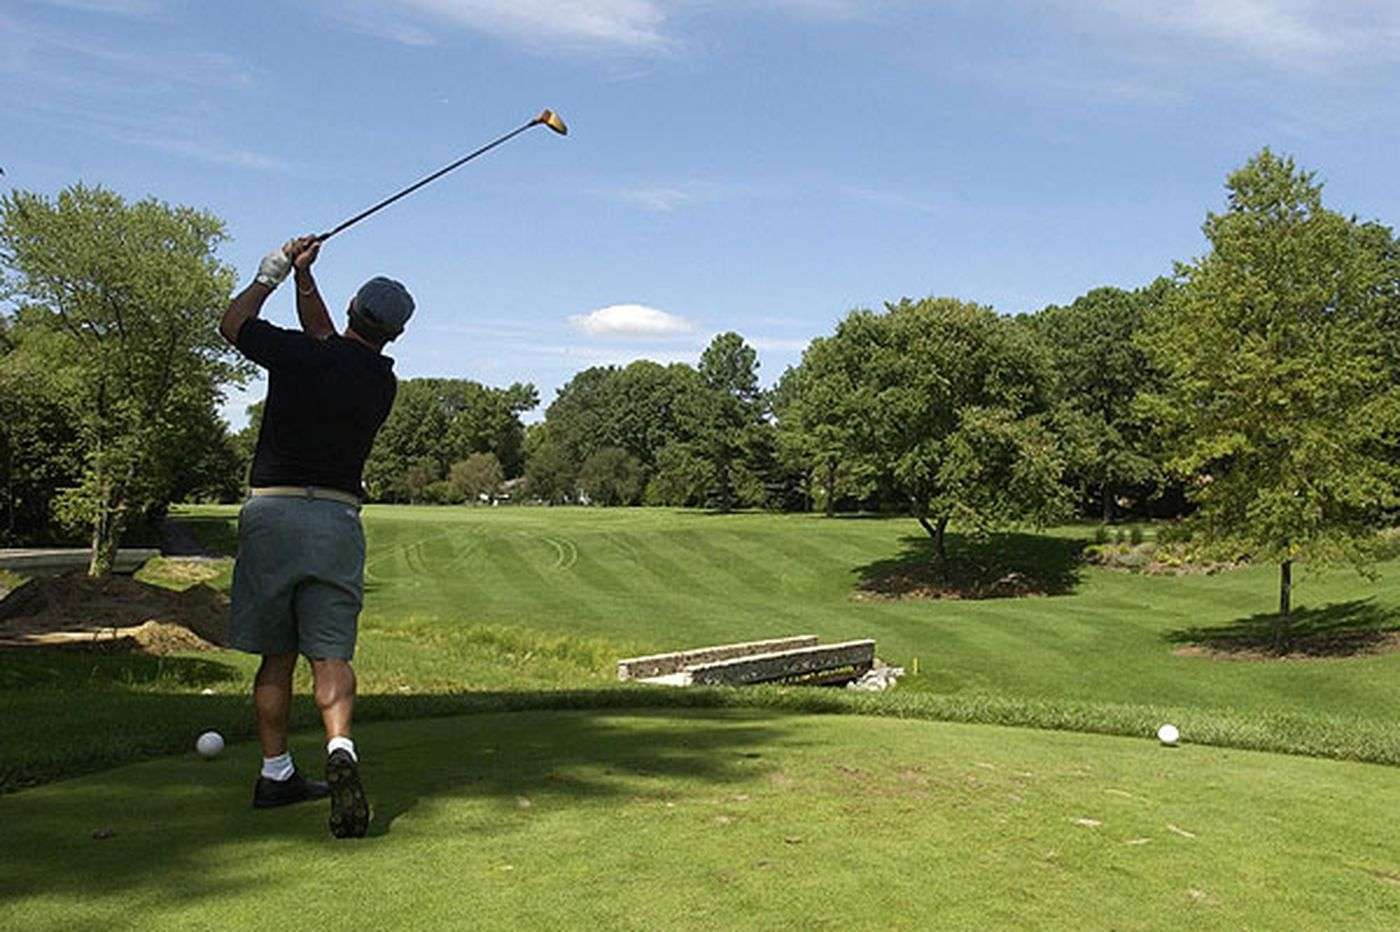 Buyers say they'll reopen Woodcrest as golf course